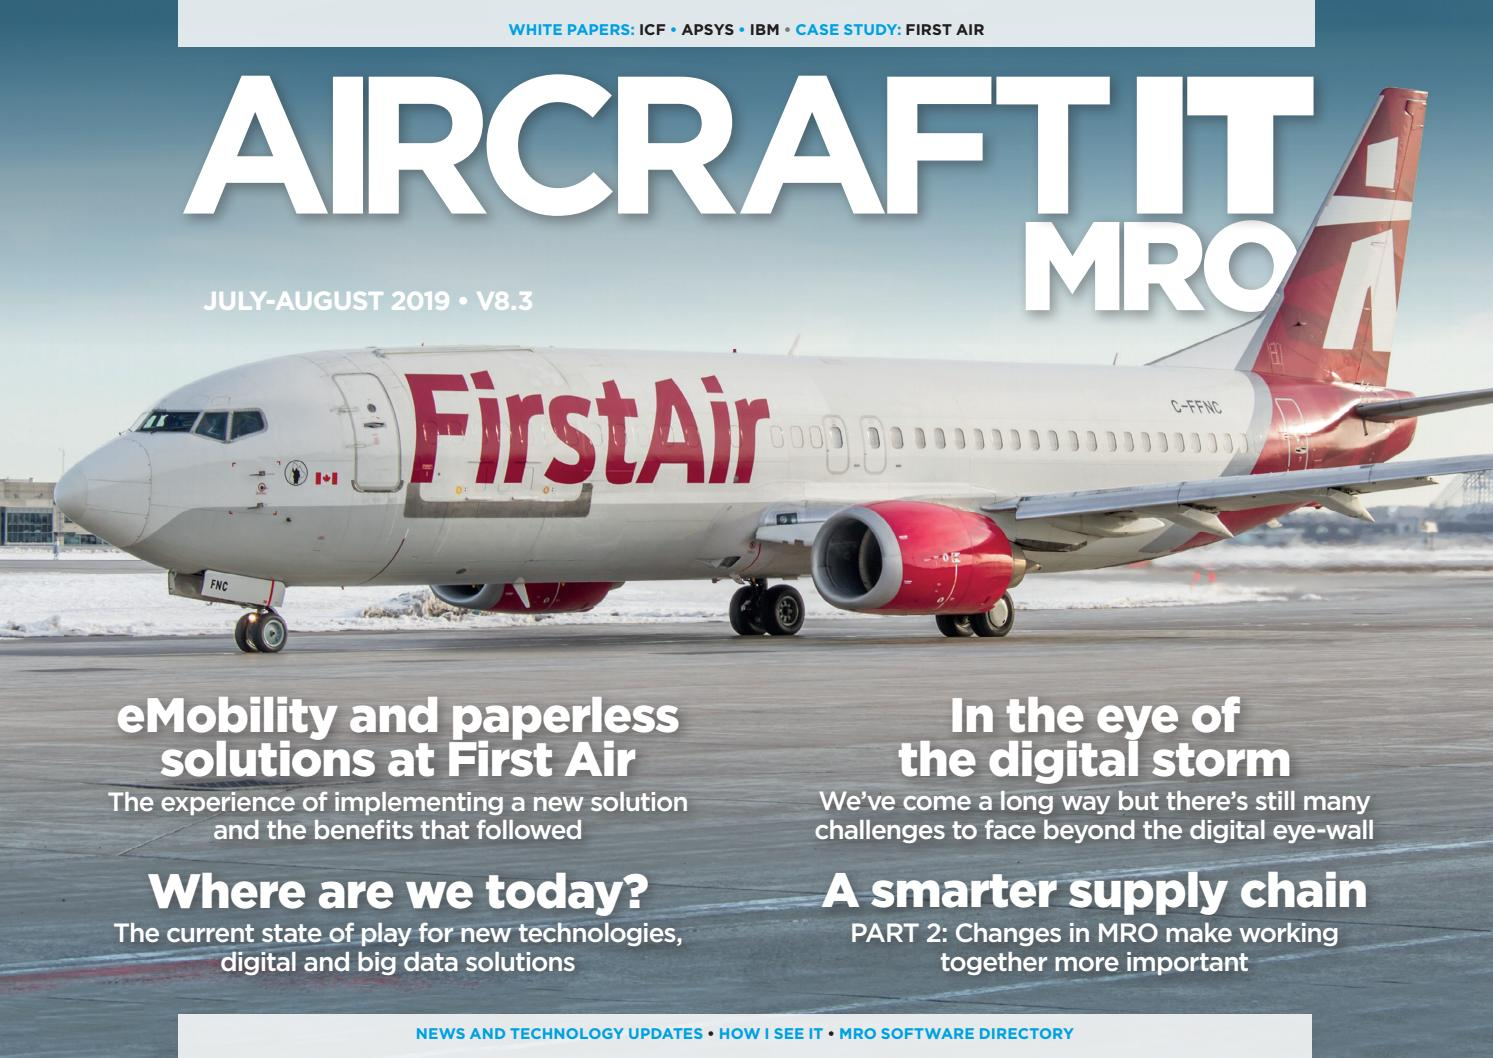 Aircraft IT MRO V8 3, July-August 2019 by aircraftit - issuu